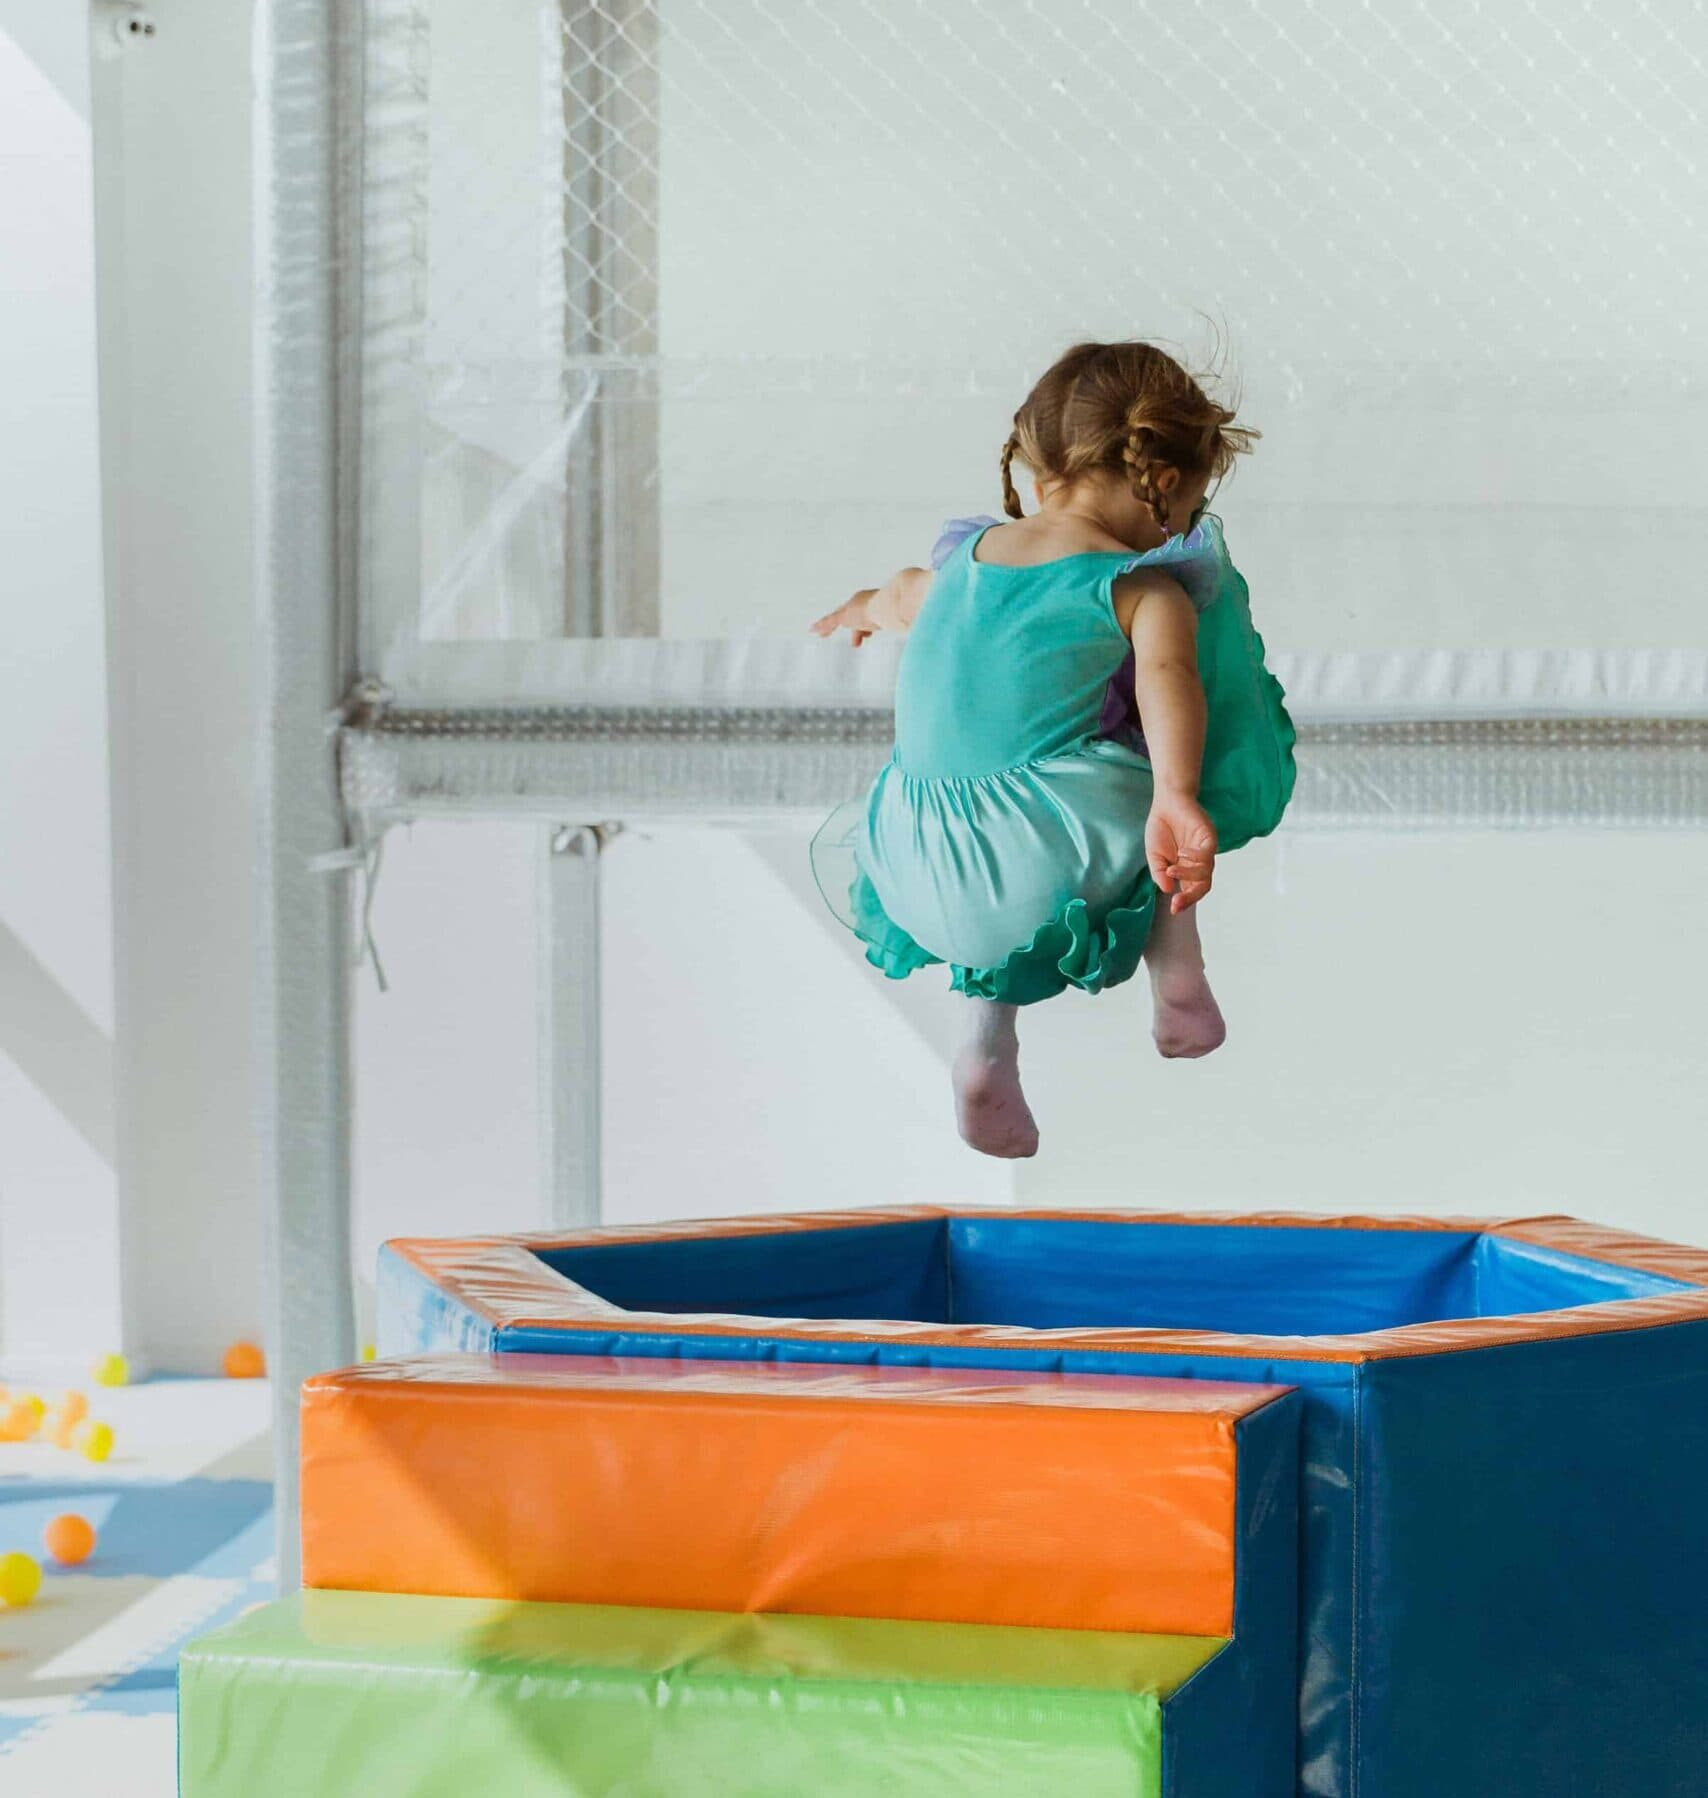 Soft play can prepare children for nursery